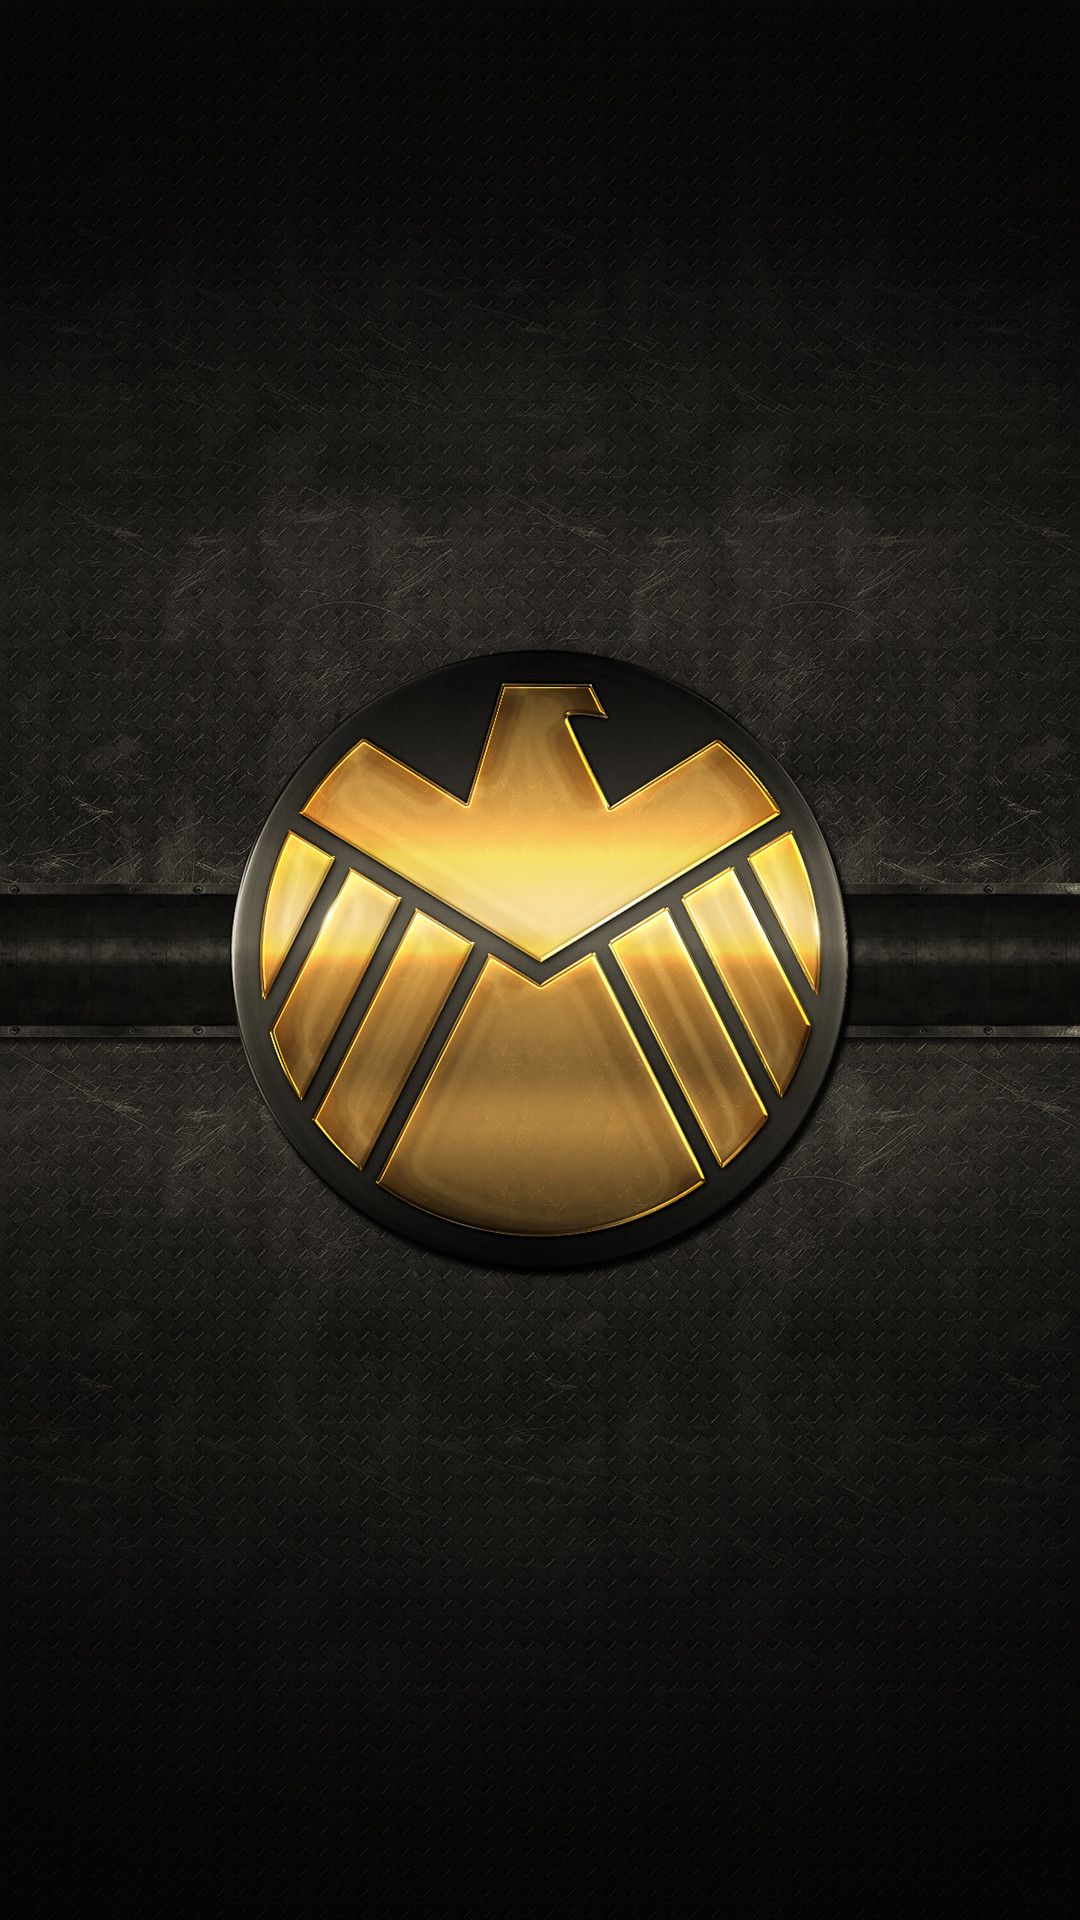 1080x1920 ... Showing Gallery For Marvel Shield Logo Iphone Wallpaper ...